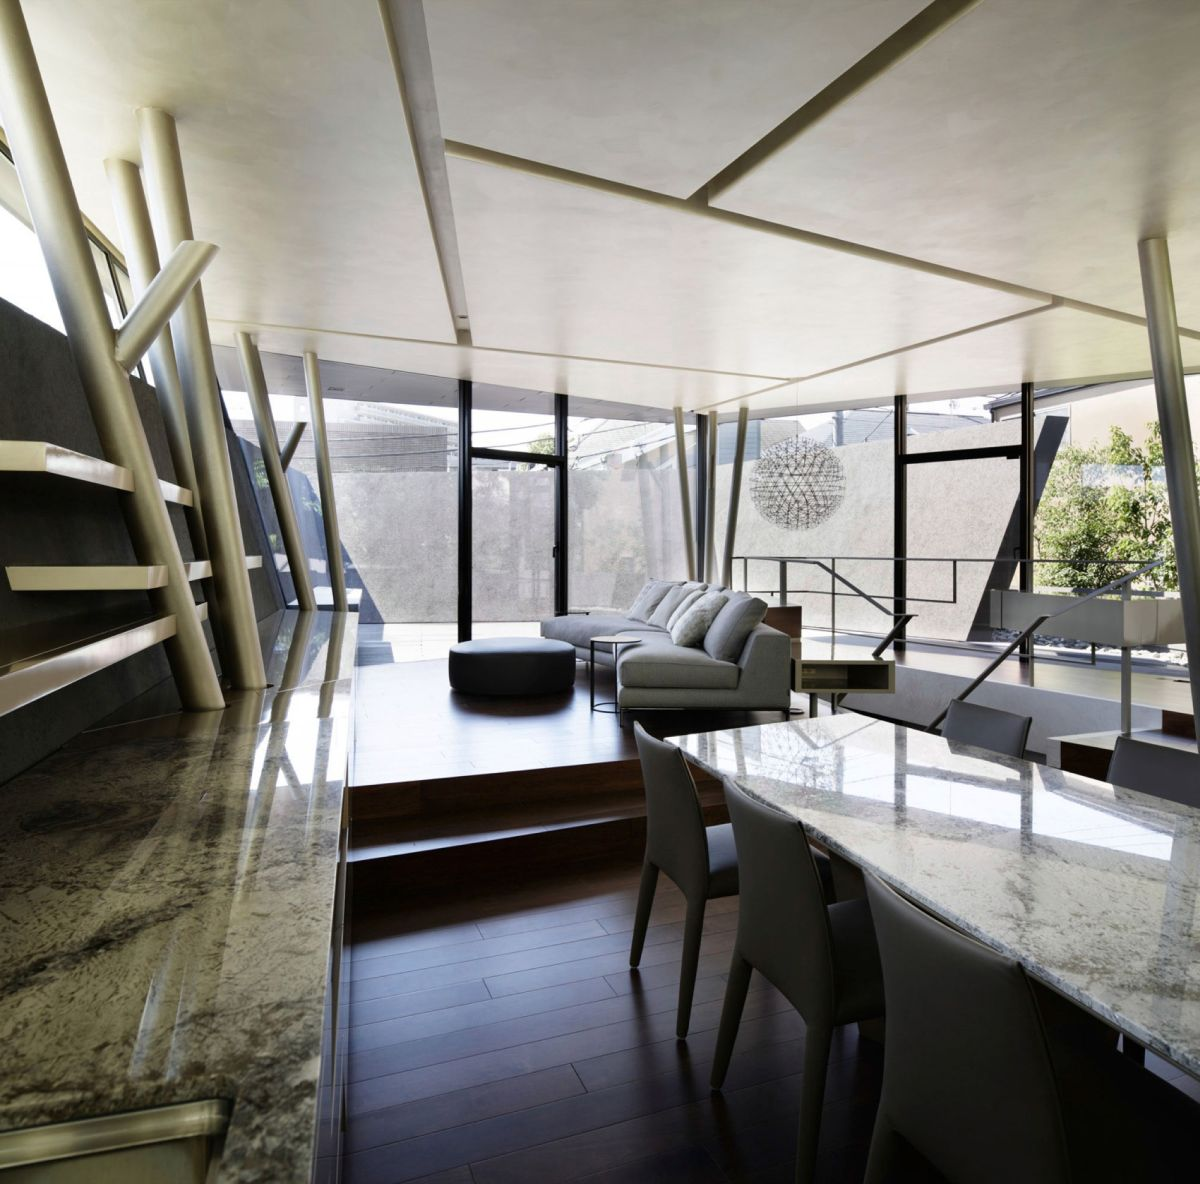 The SRK residence in Tokyo maintains a sculptural decor throughout